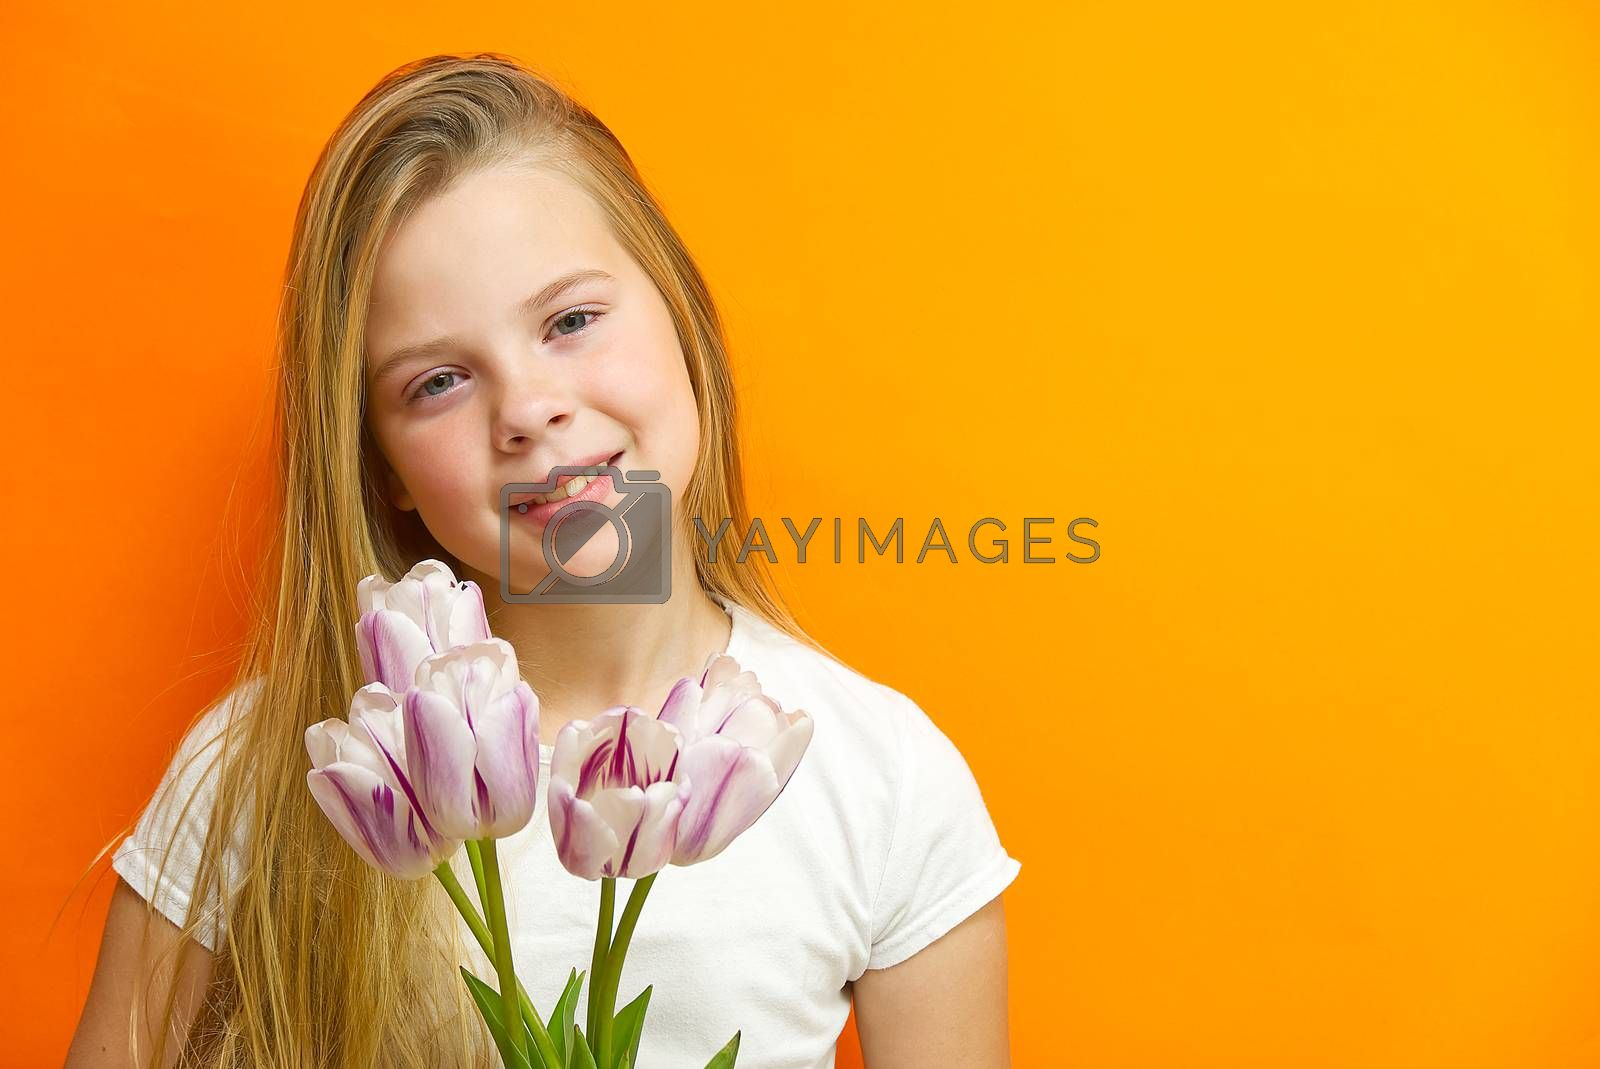 smiling young handsome girl on an orange background with tulips in hands. Children happiness